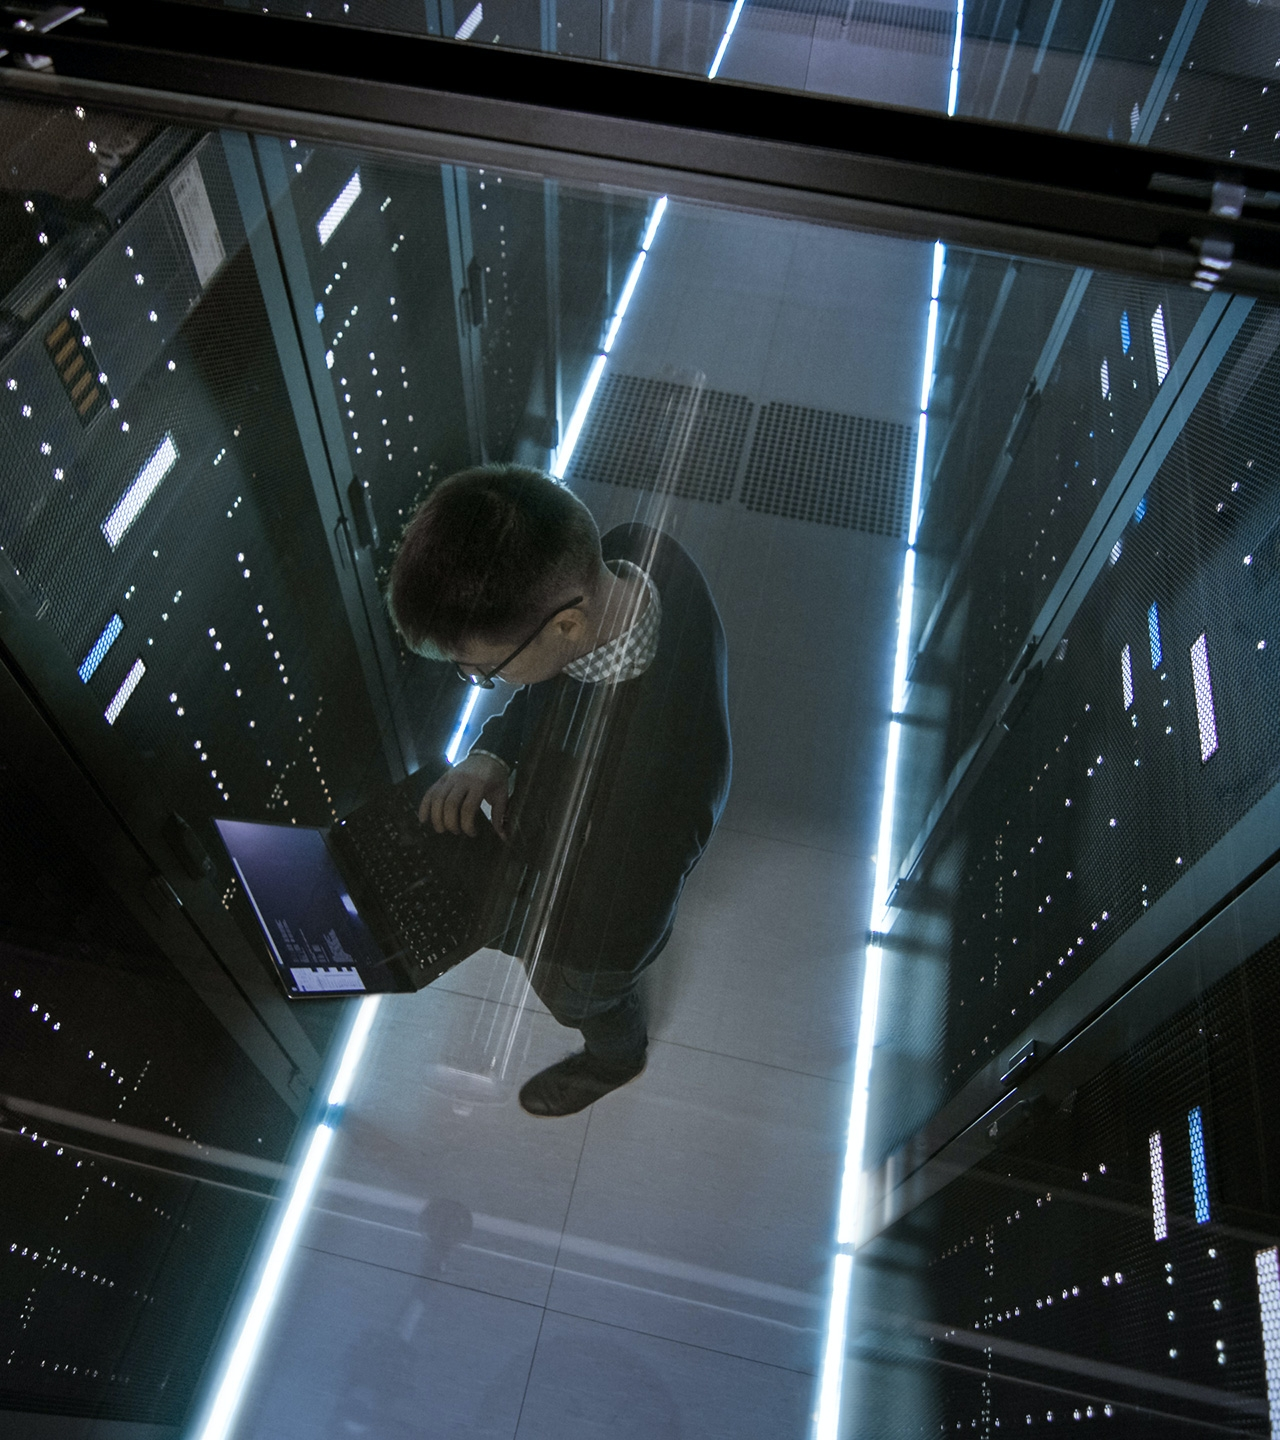 SysOps engineer on the disaster recovery site - hero image